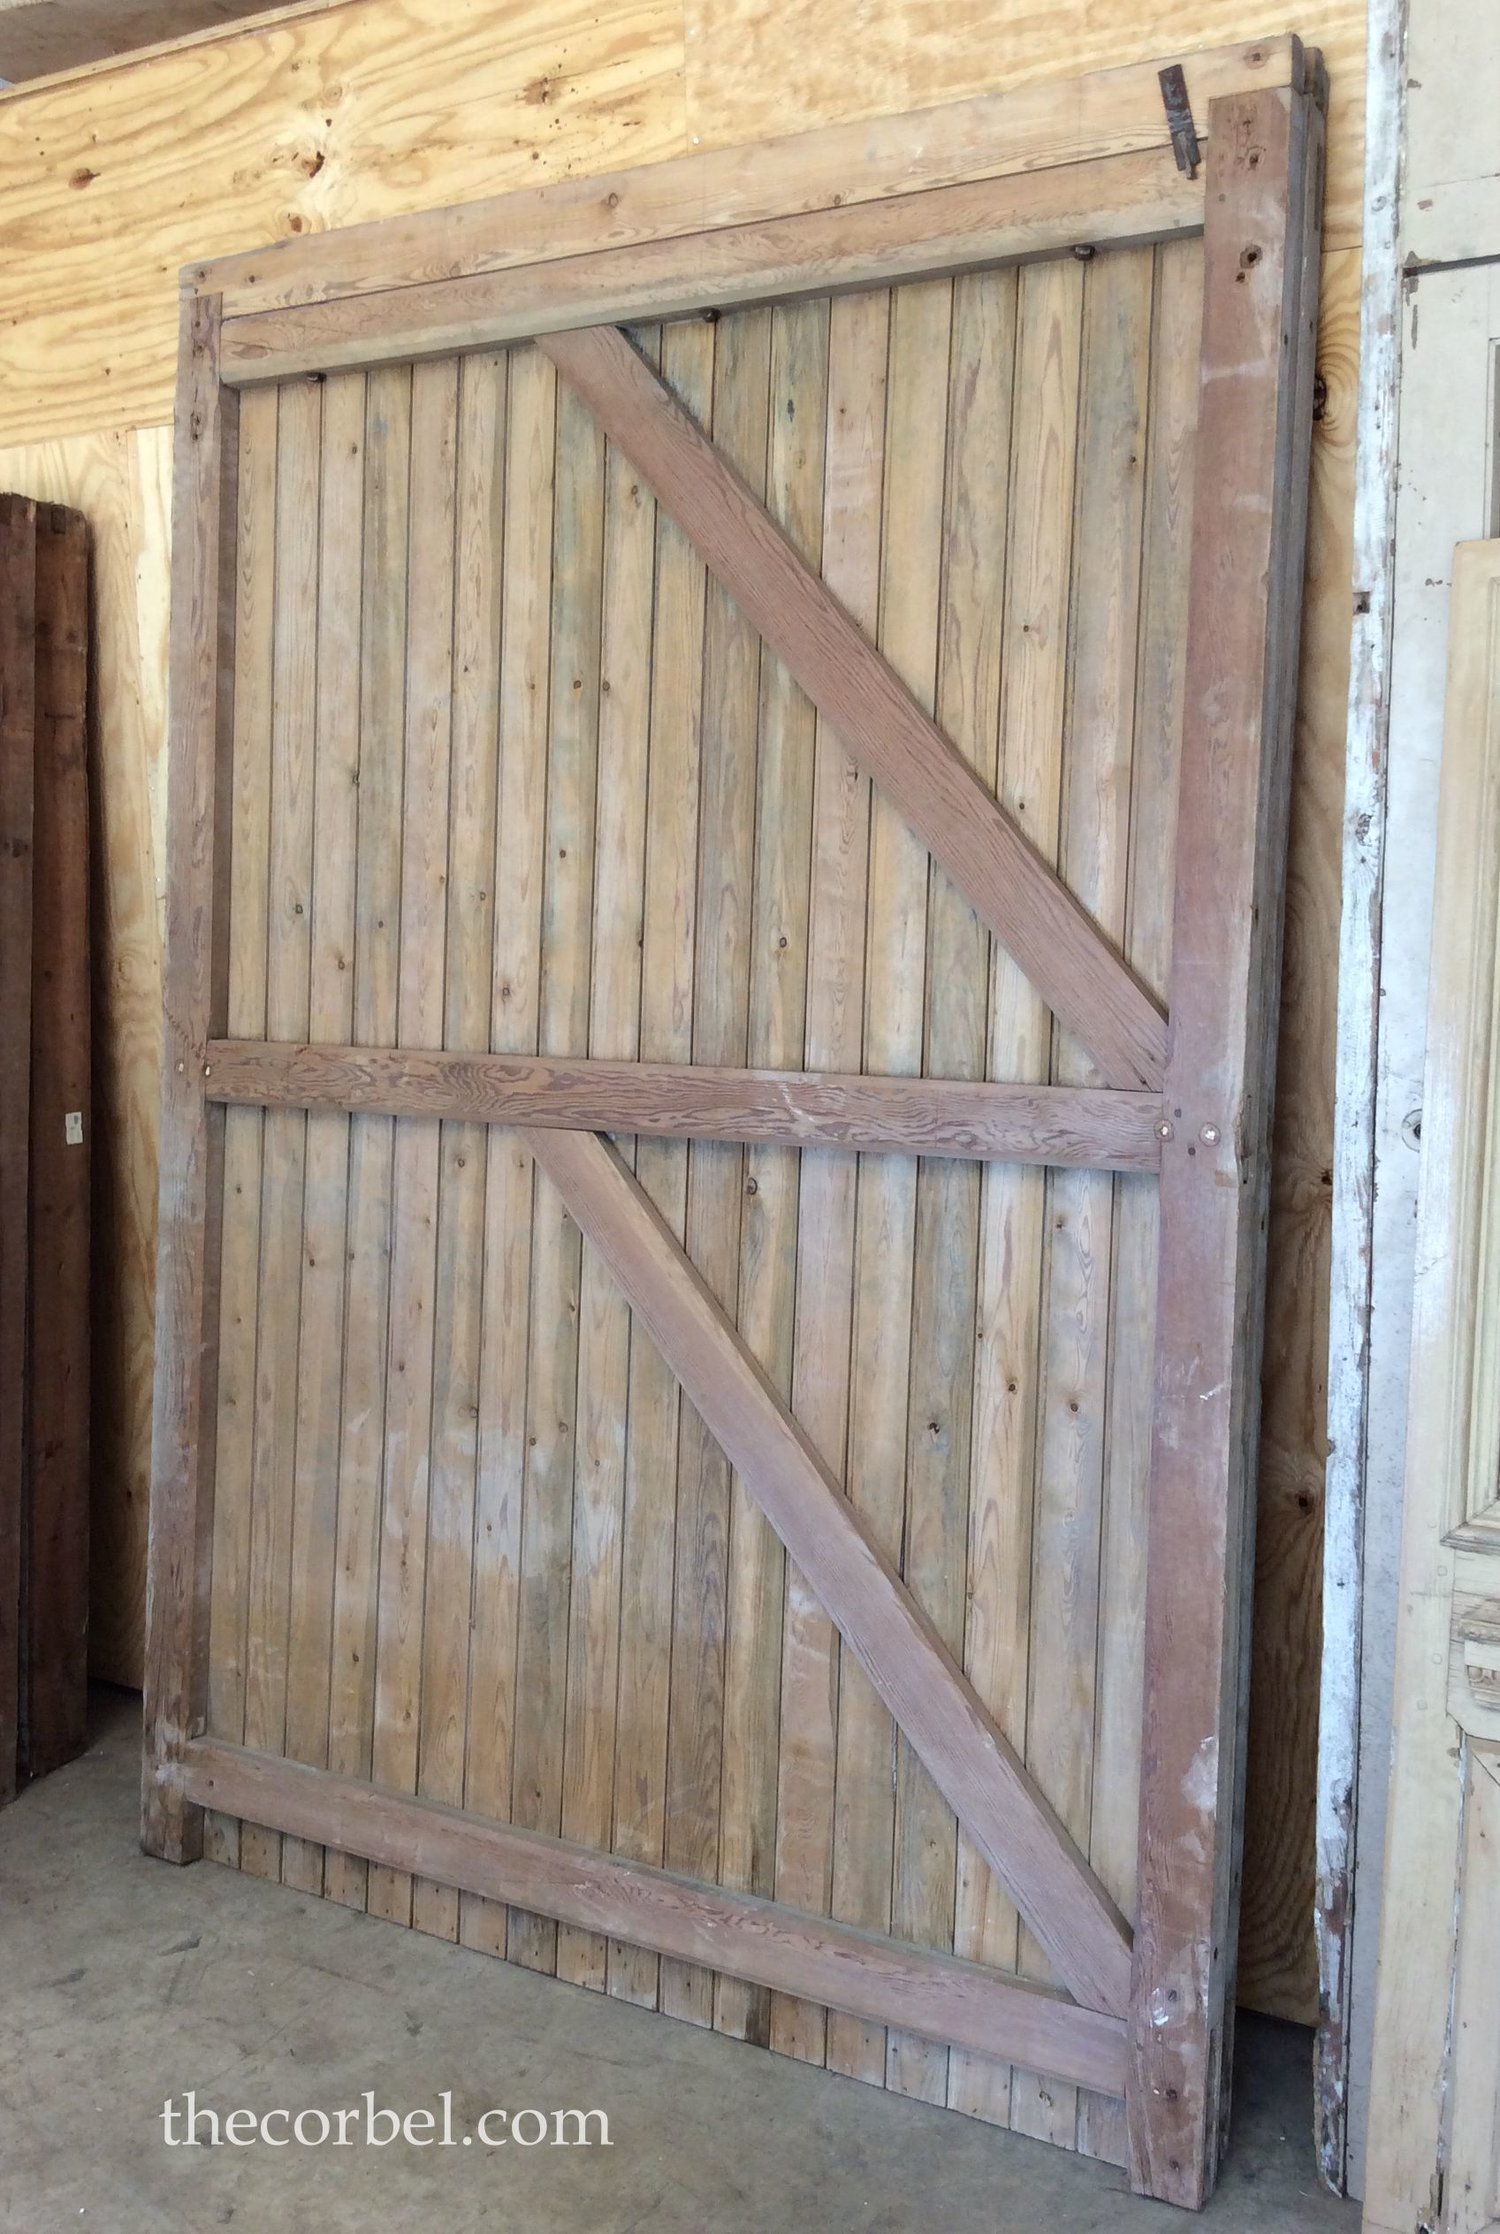 large barn door - Post - The Corbel